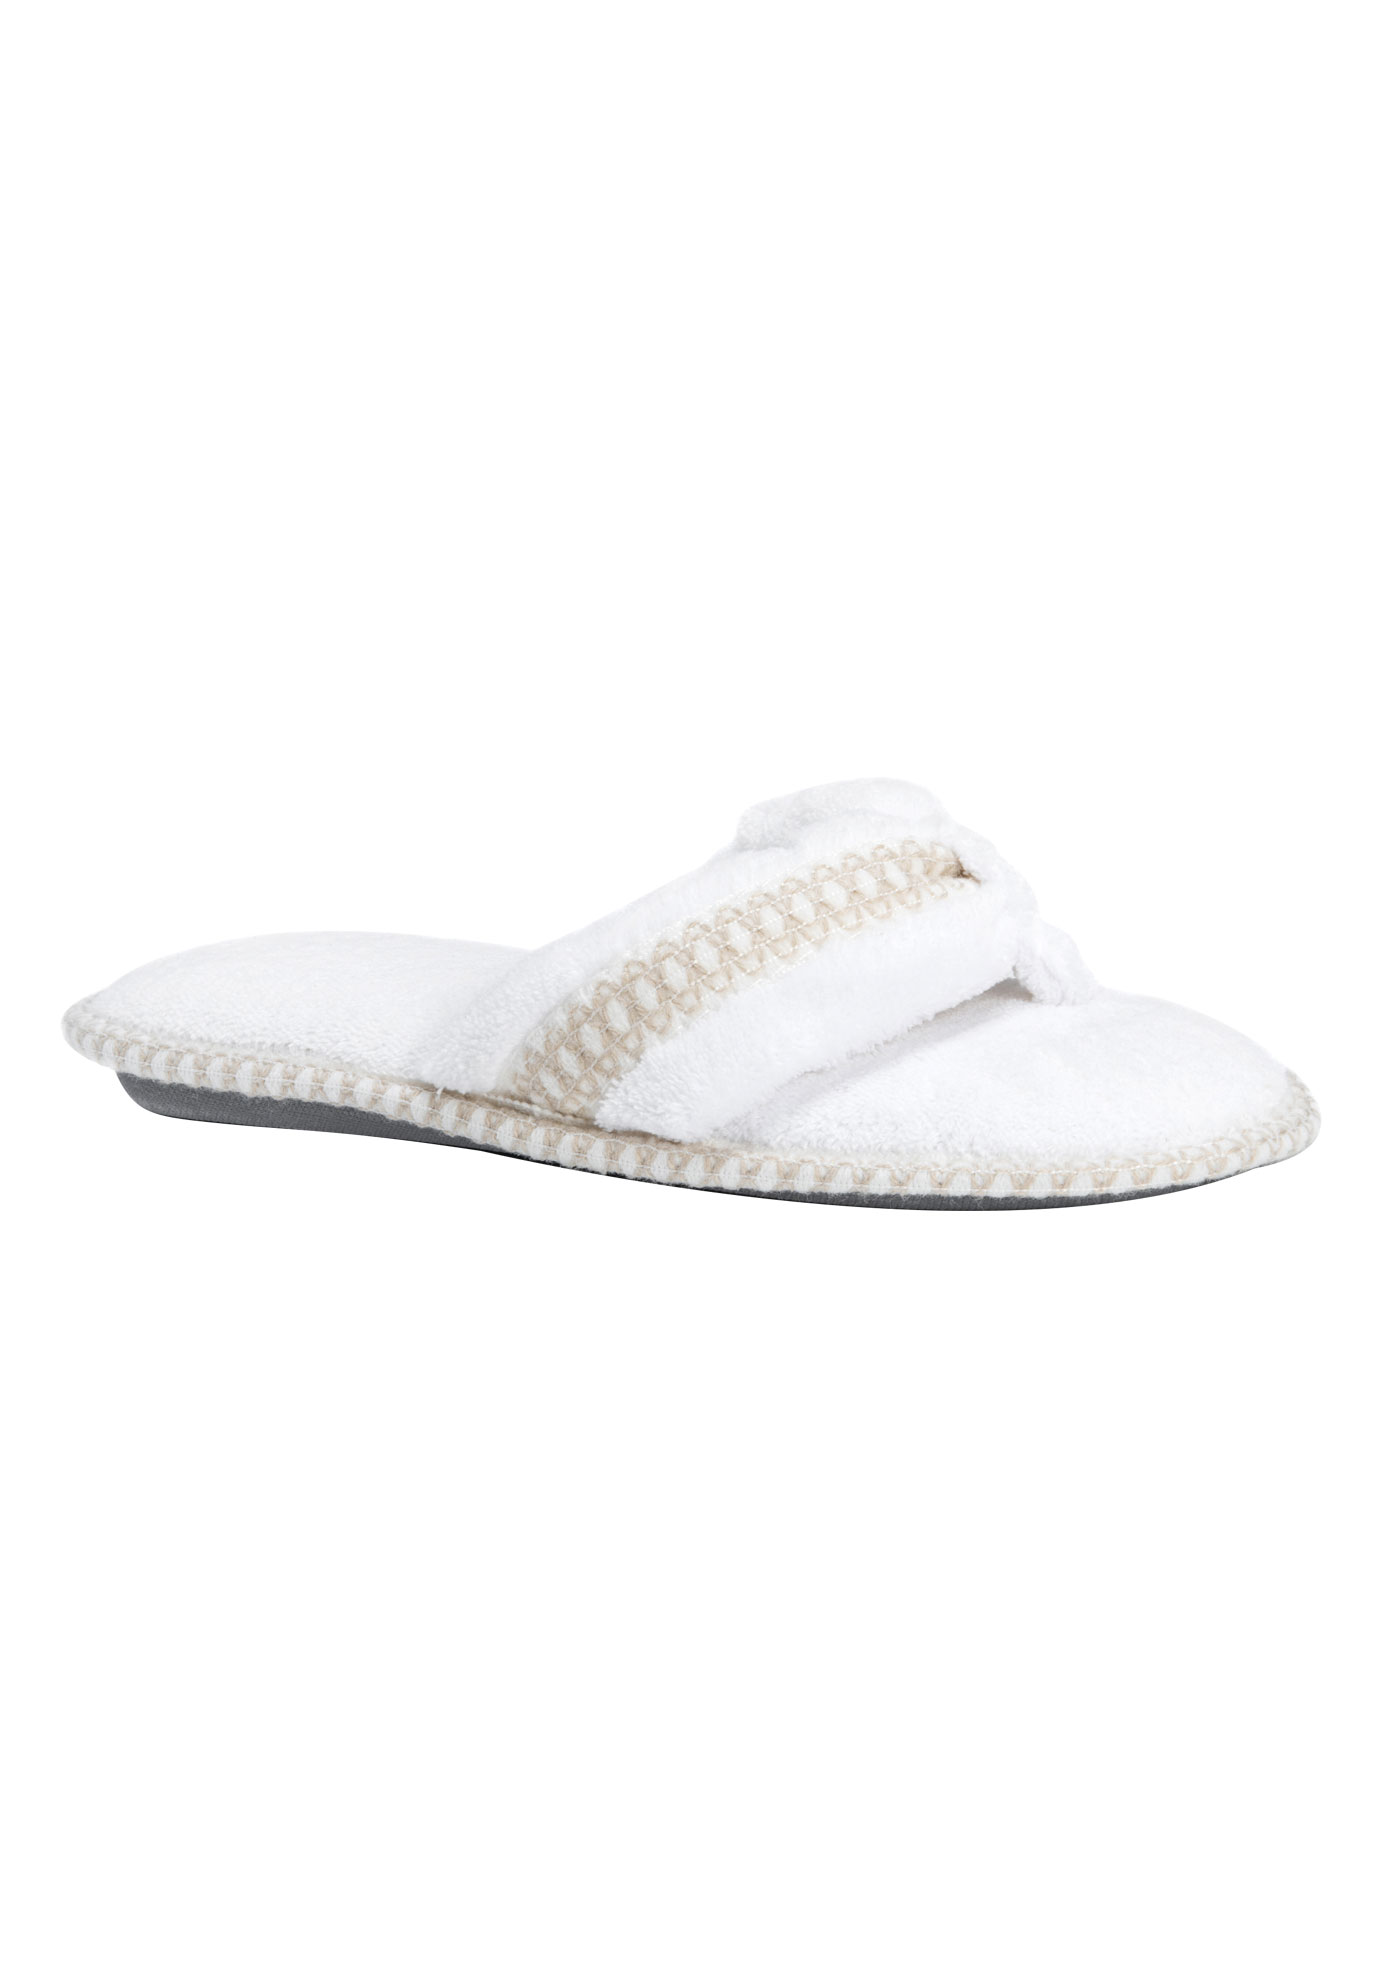 Darlene Thong Slippers by Muk Luks®,